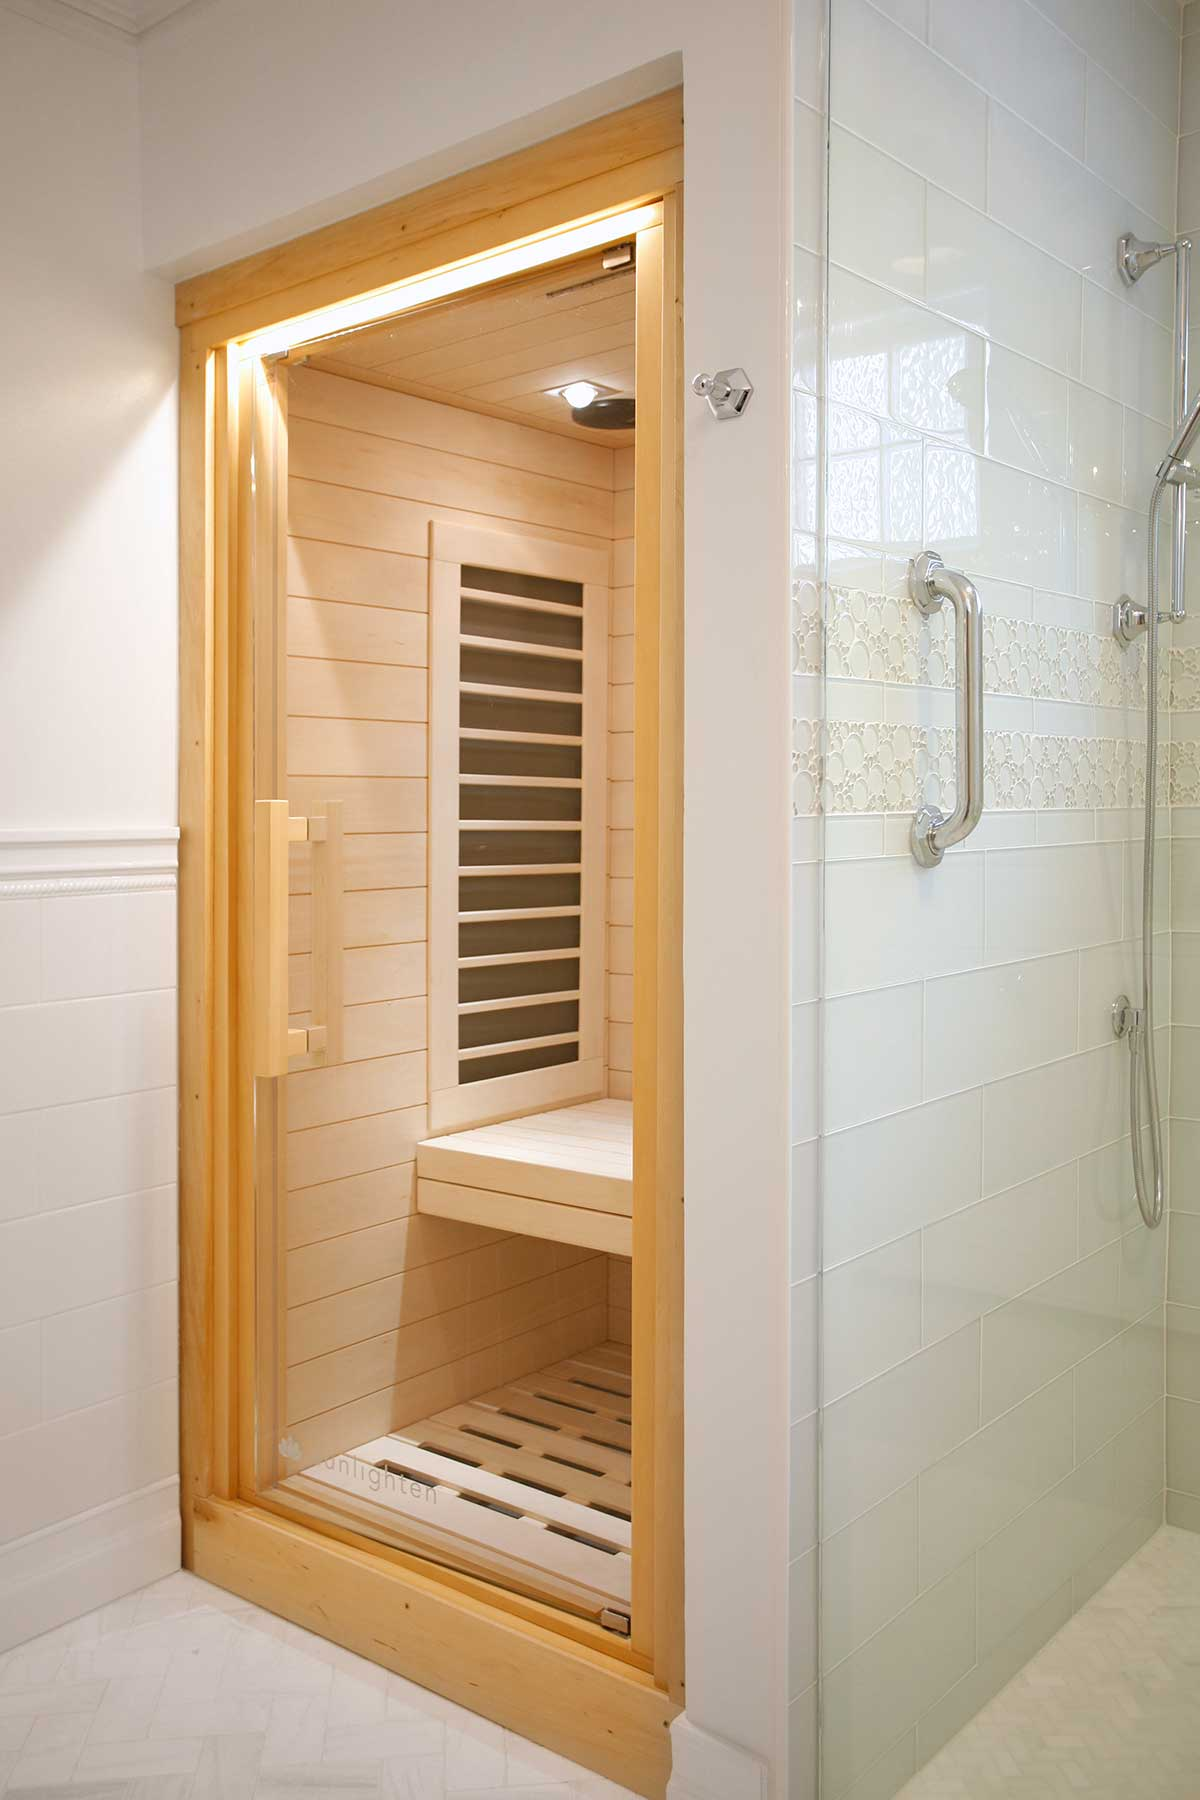 Sauna room in bathroom